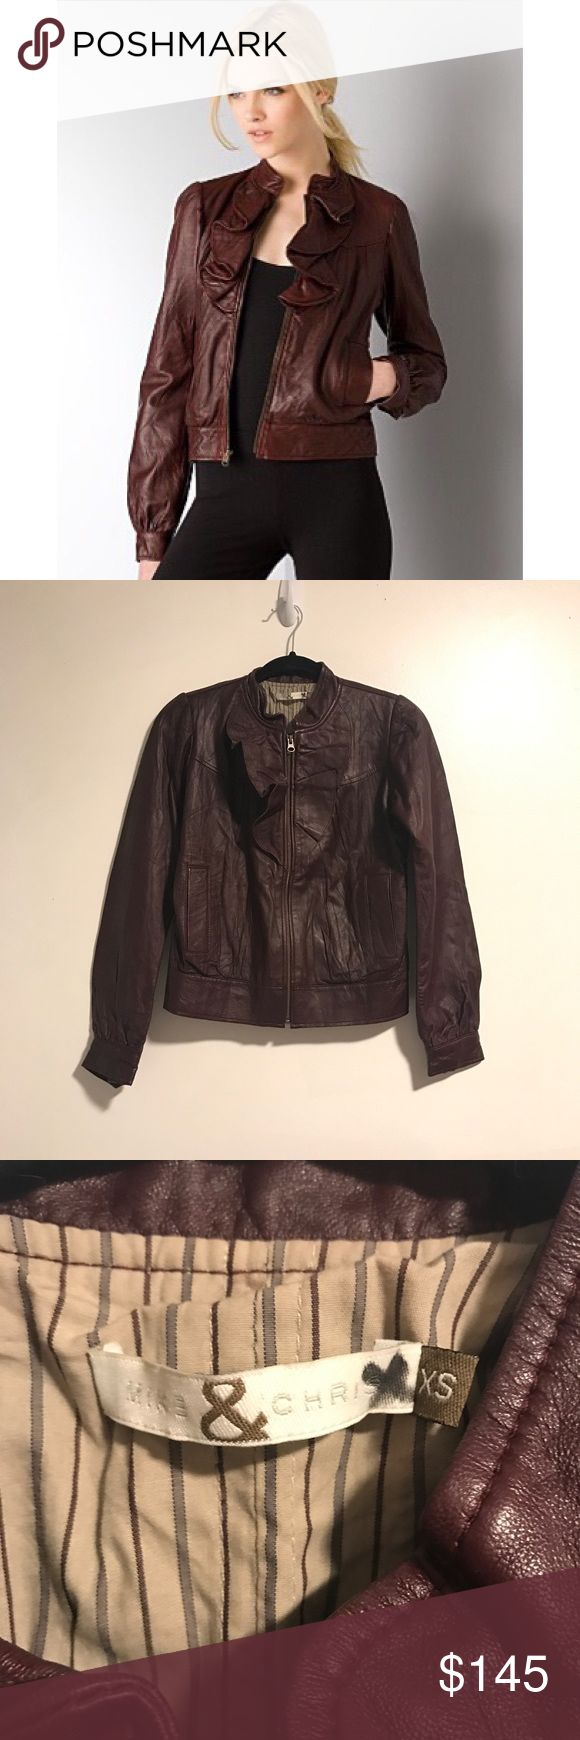 $645 Mike & Chris Lambskin Leather Janus Jacket Beautiful wine colored ruffled lambskin leather jacket from Mike & Chris. Size XS. Leather is in excellent condition and jacket is overall. One small flaw is that a button on one cuff is coming loose but this is an easy fix. 100% lamb skin leather. Originally $645. No trades! Mike & Chris  Jackets & Coats